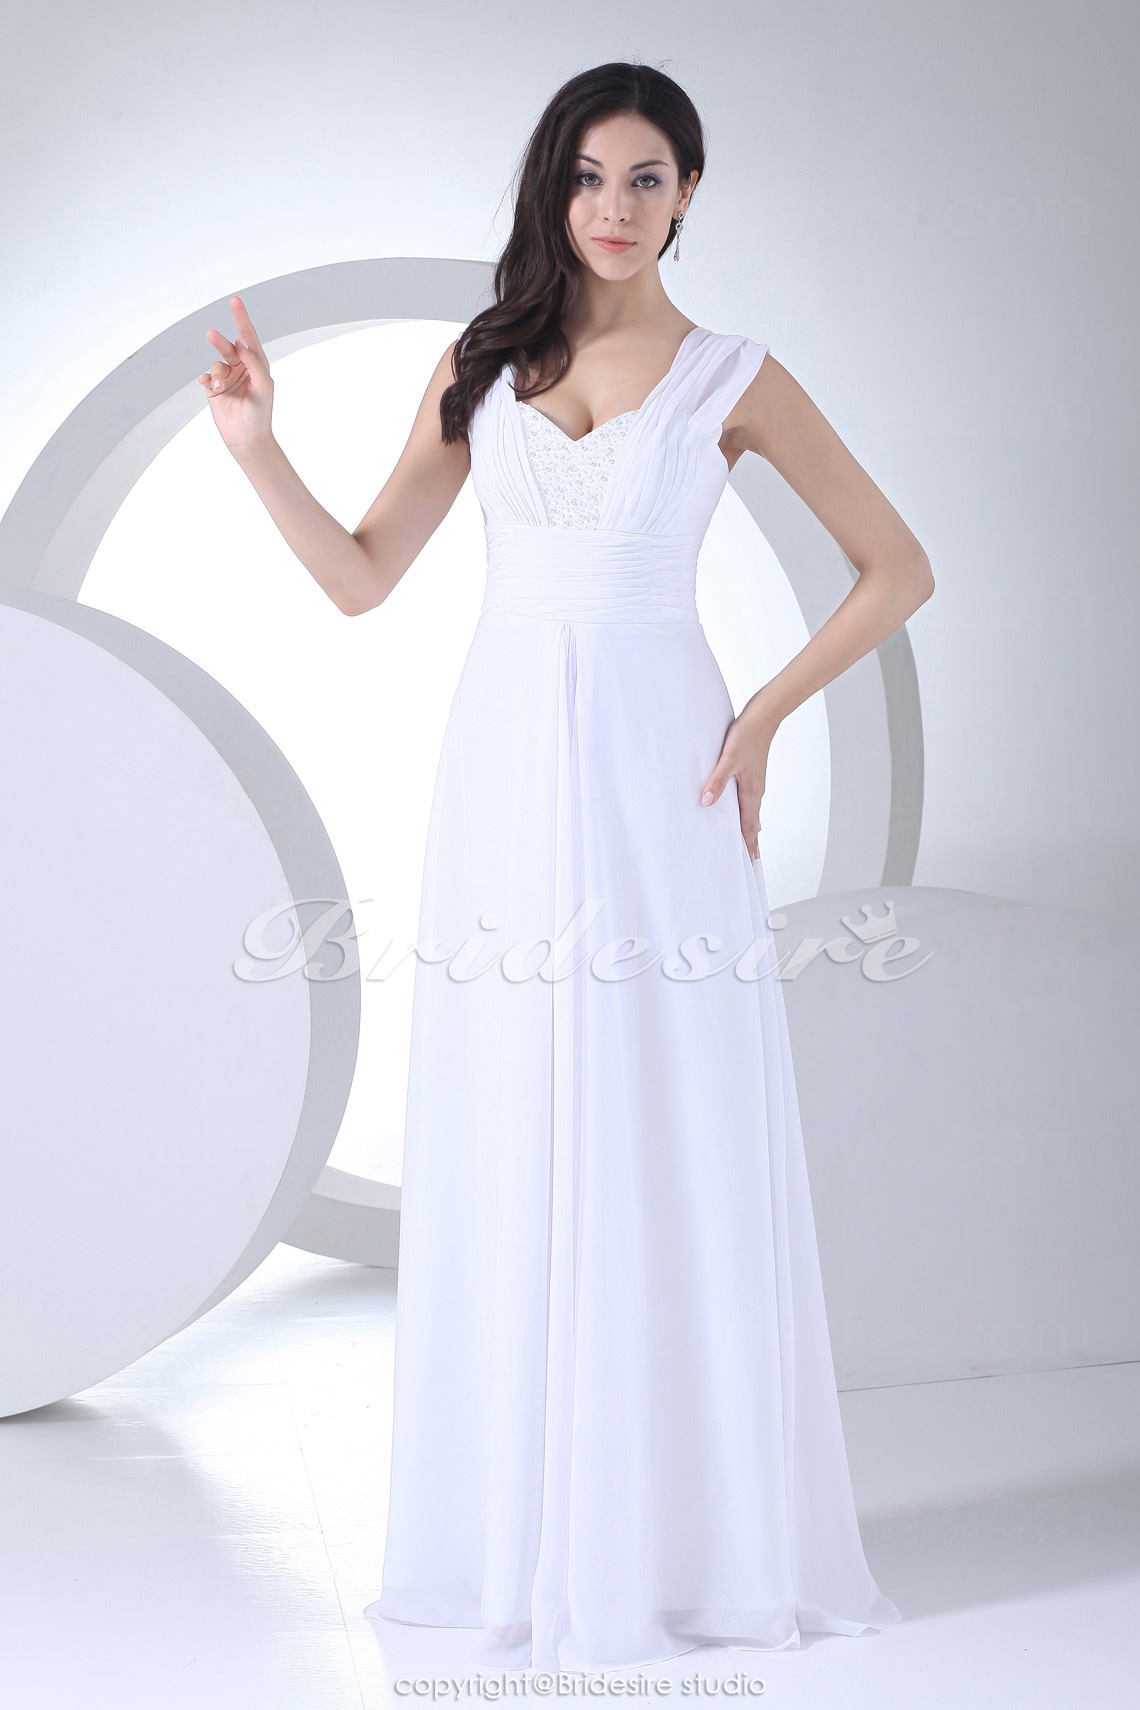 Sheath/Column Sweetheart Floor-length Sleeveless Chiffon Wedding Dress